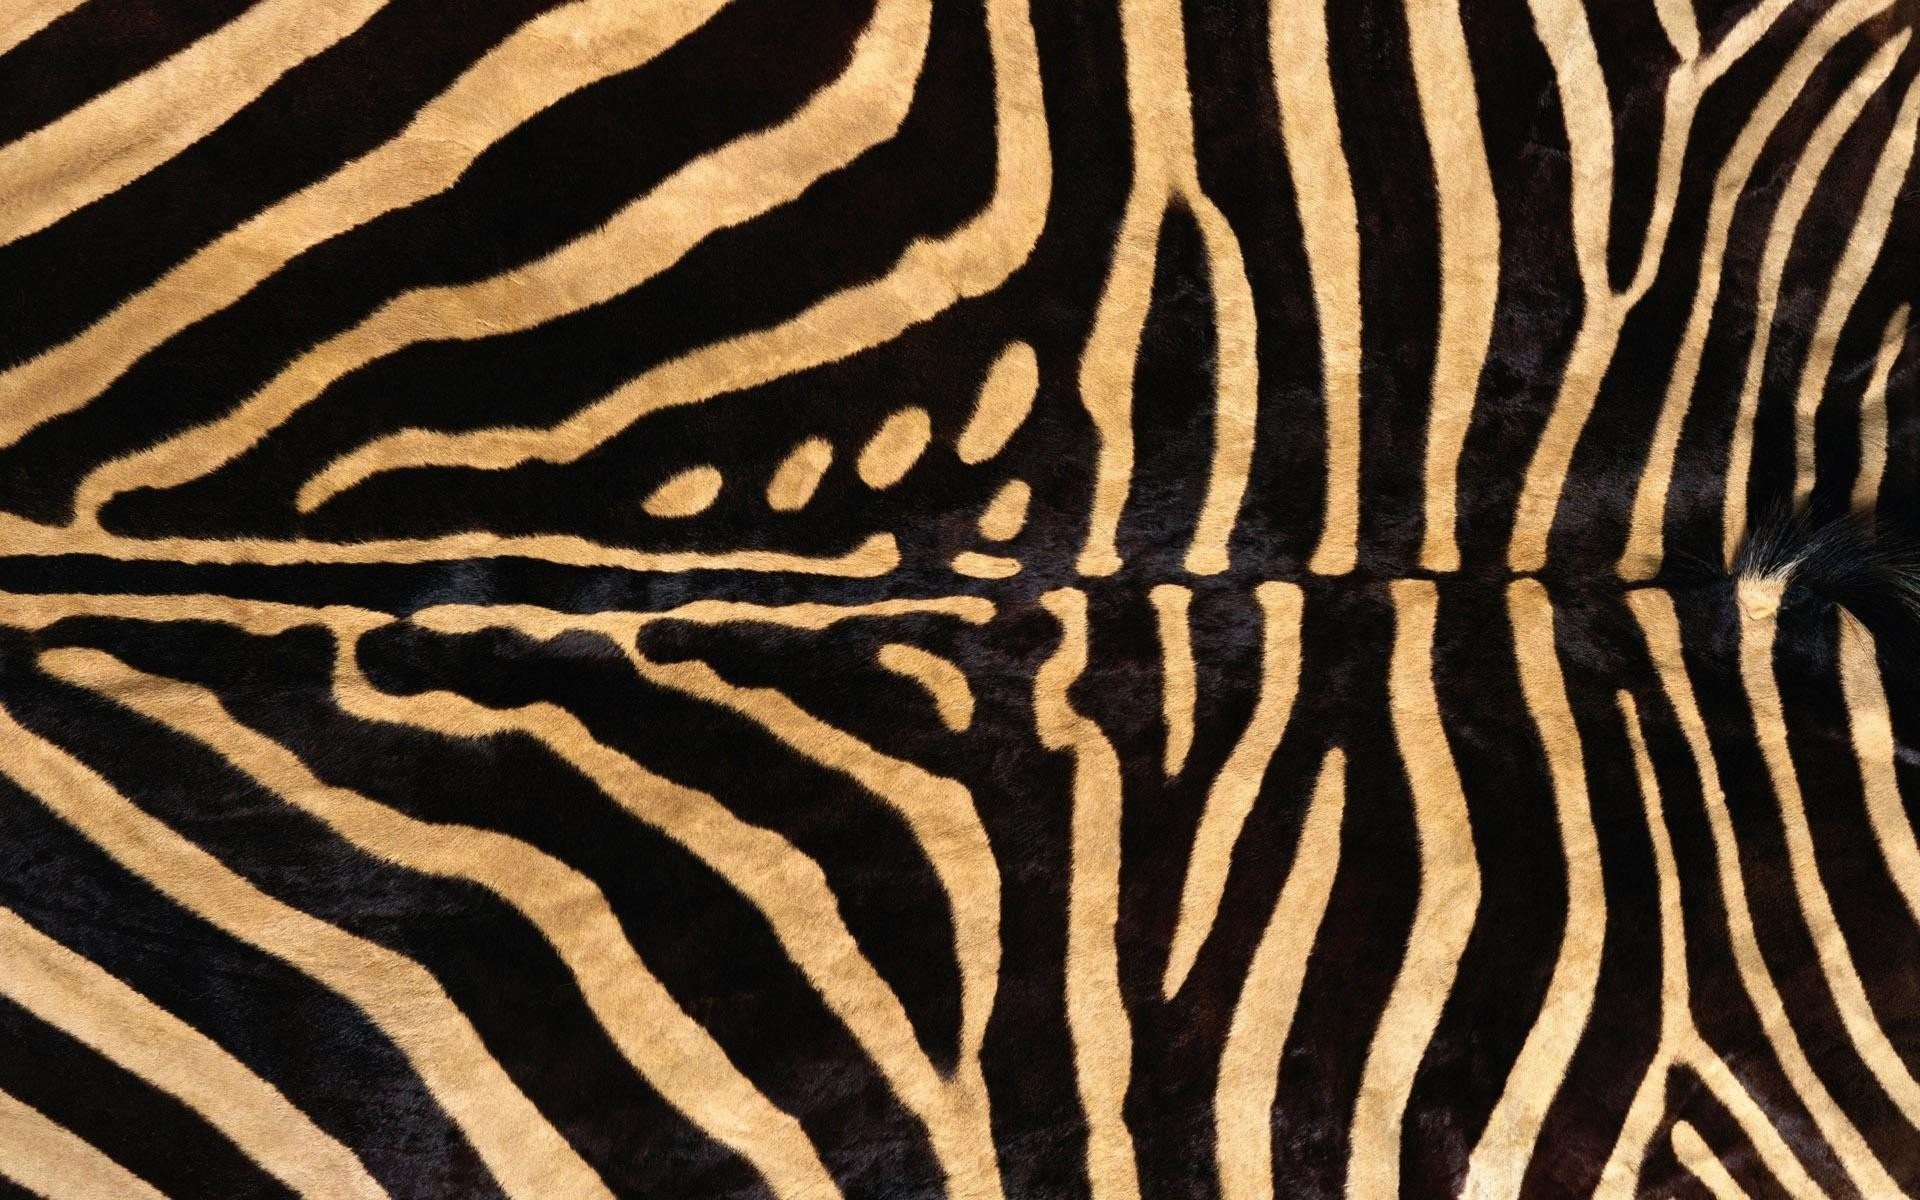 Zebra background download free stunning hd wallpapers - Pink zebra wallpaper for iphone ...